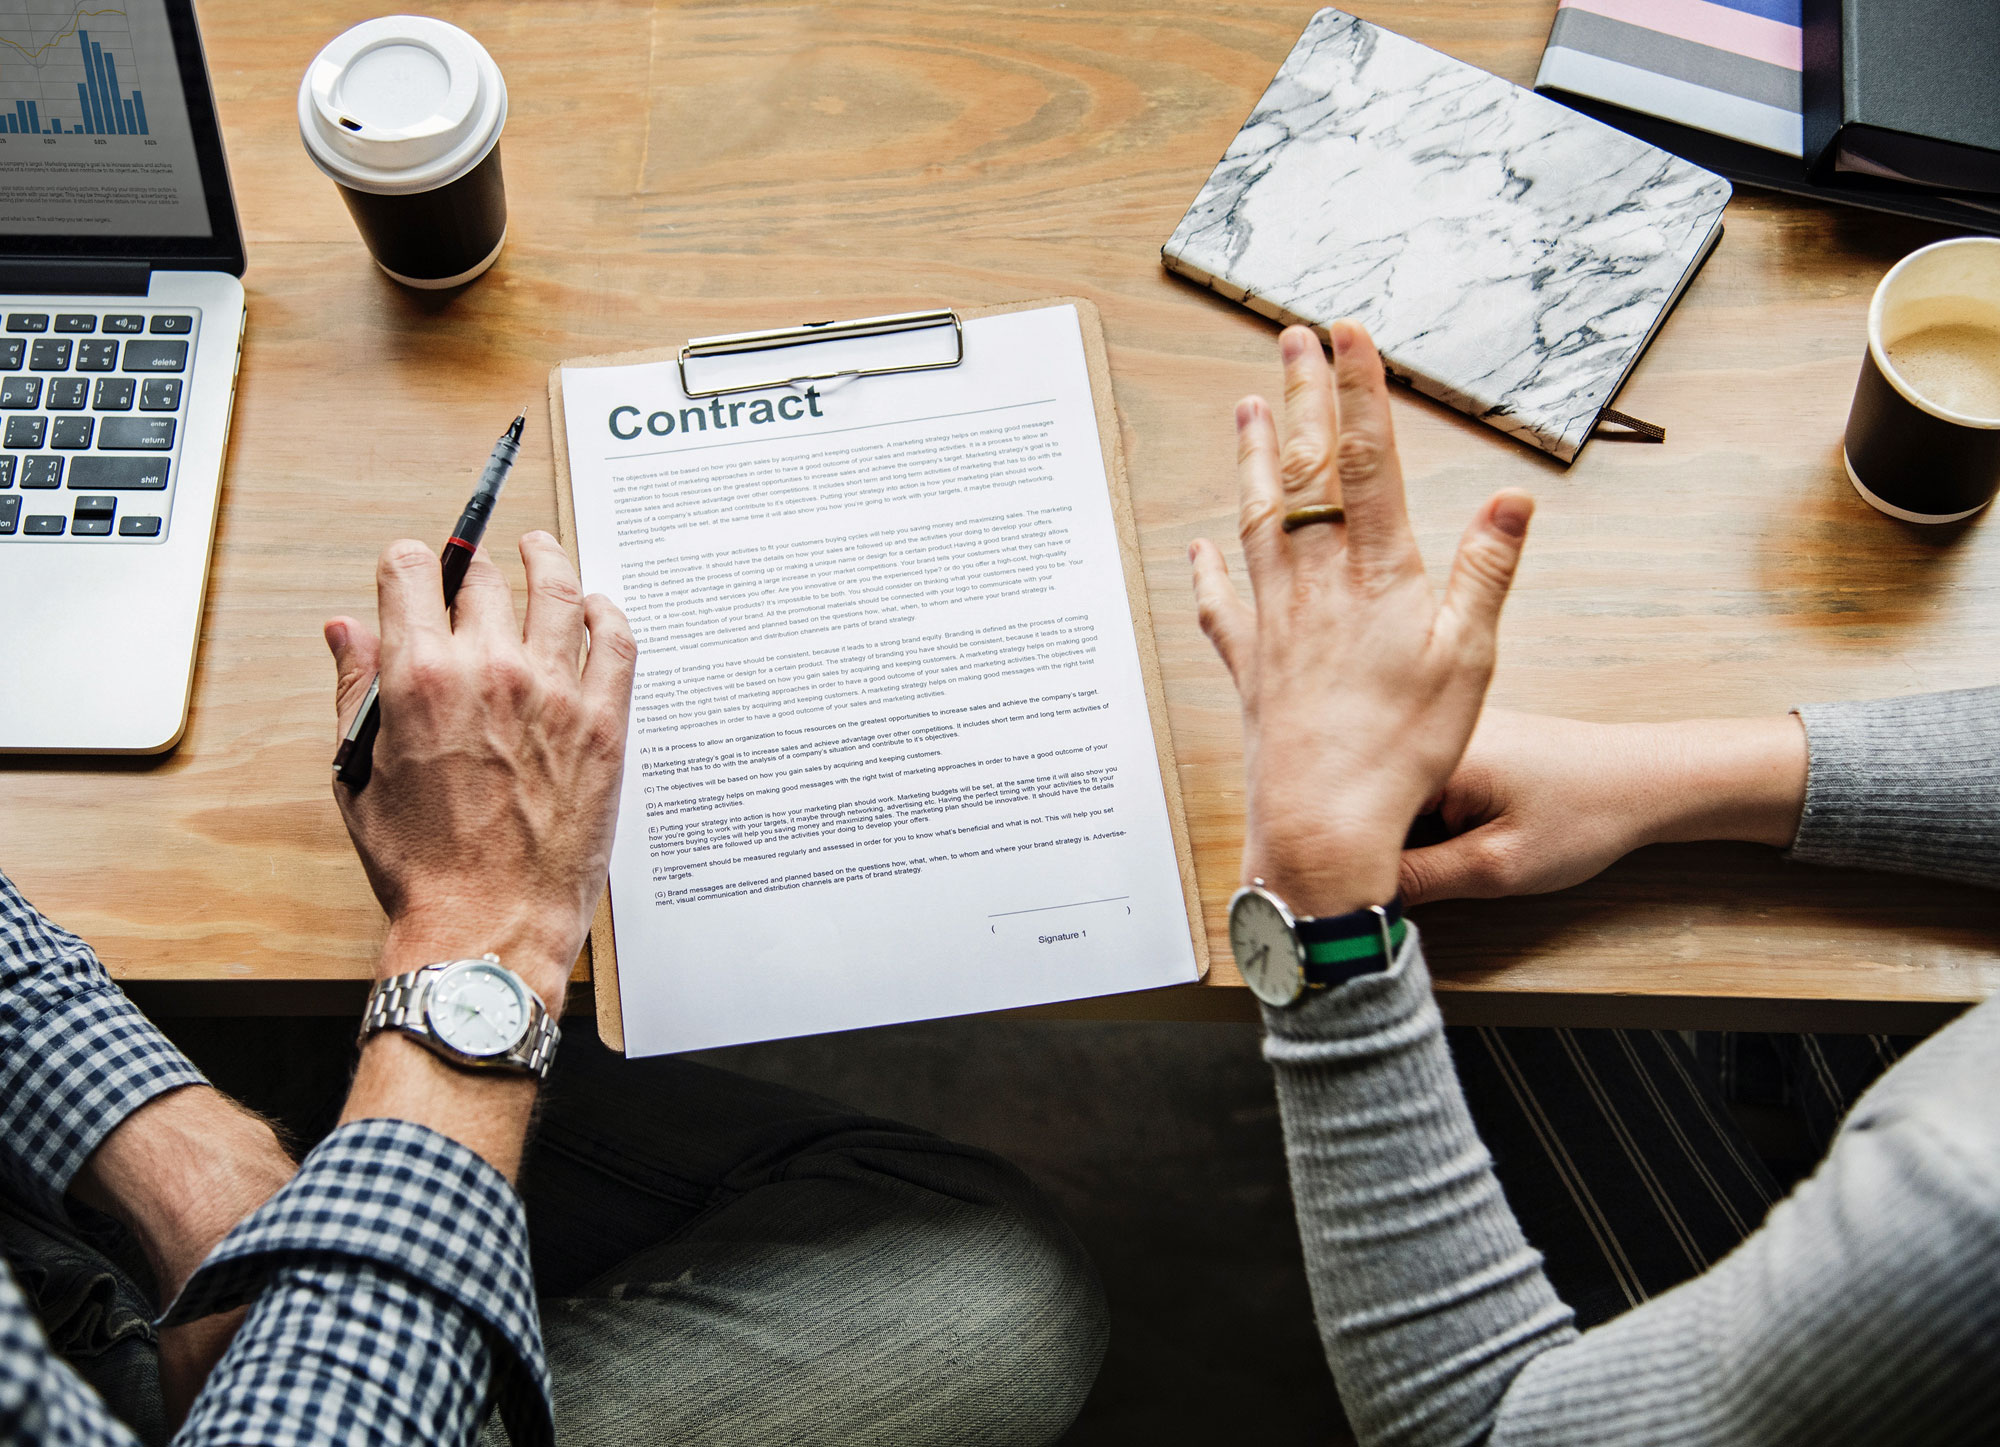 The importance of using Written Contracts in Business